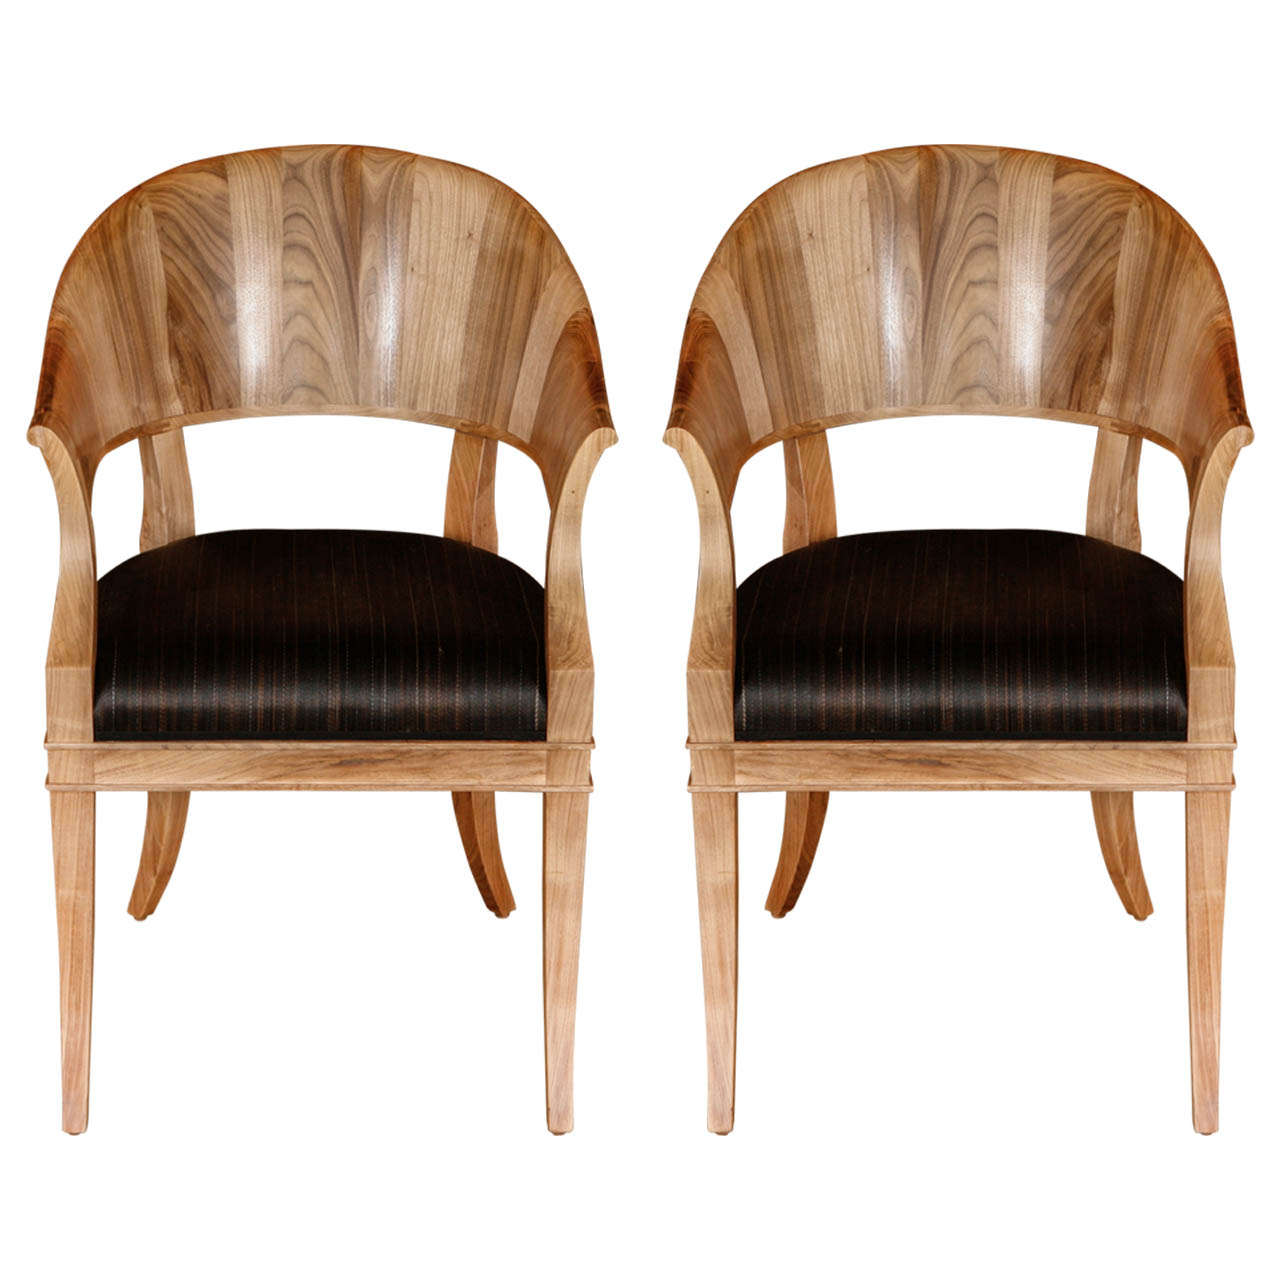 Bleached Walnut French Art Deco Style Chairs For